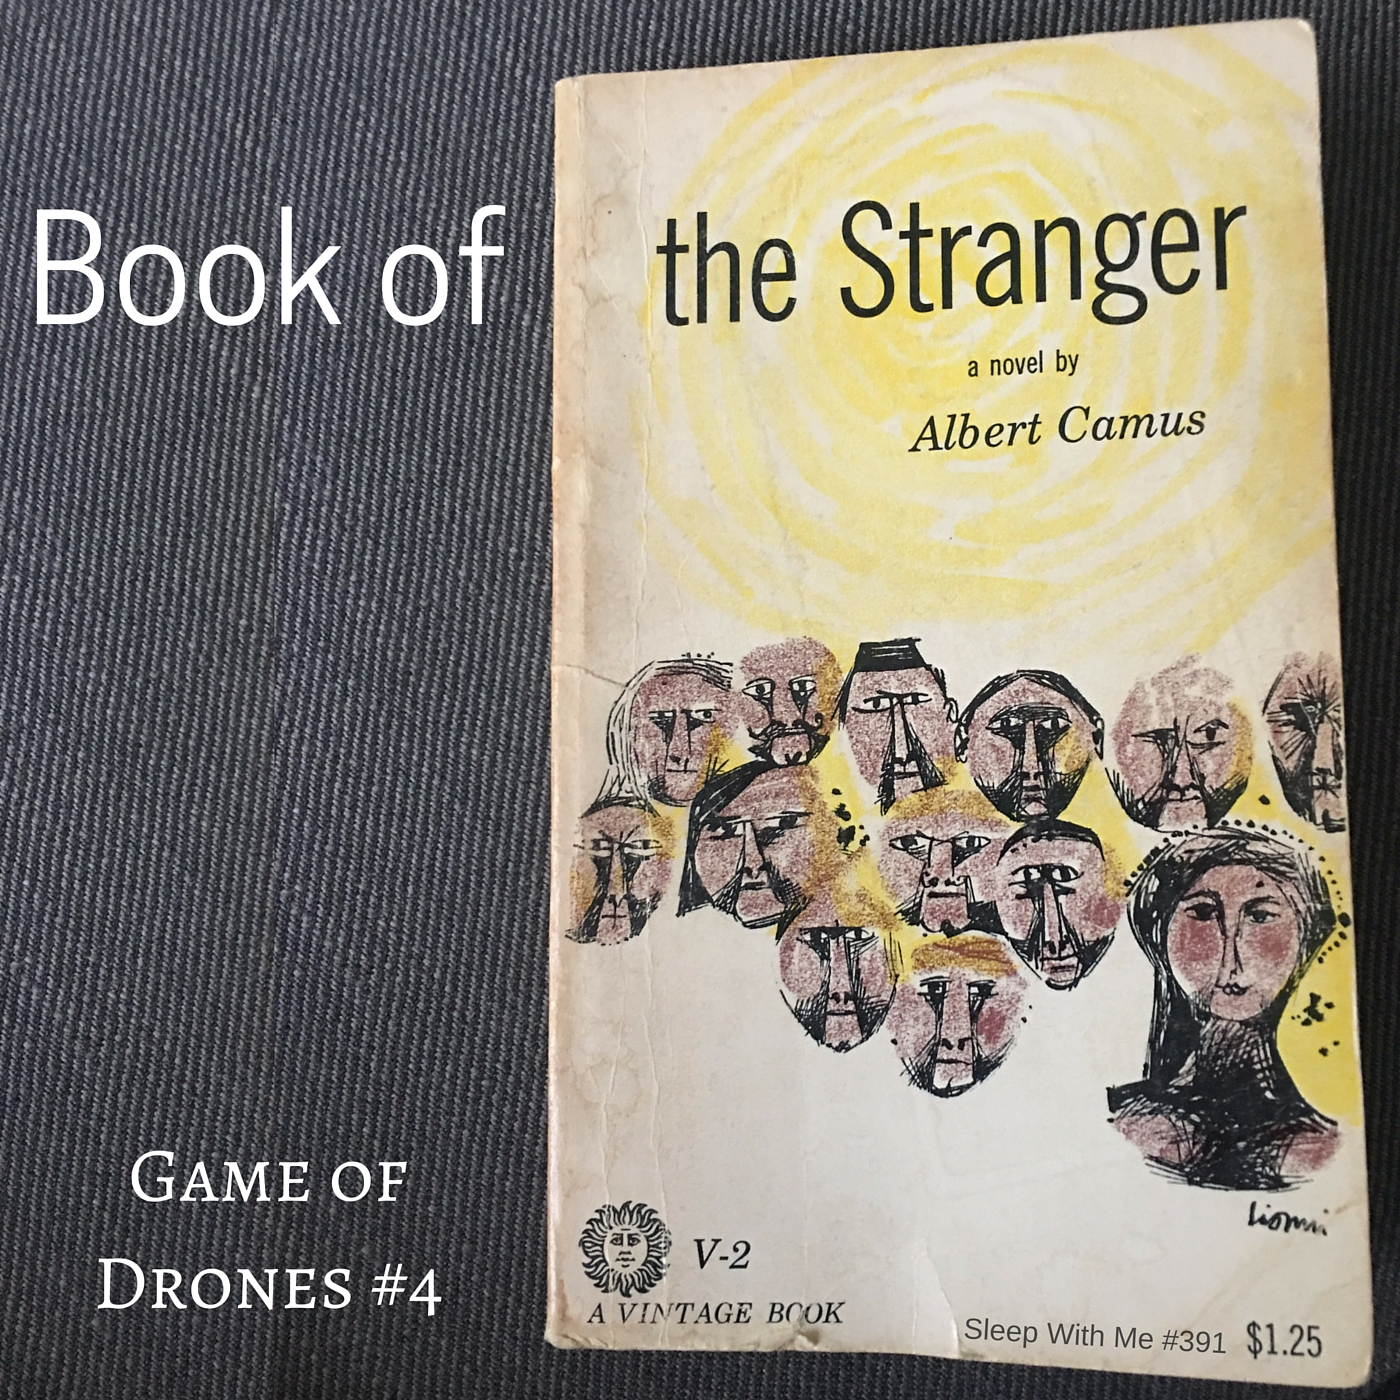 Book of the Stranger | Game of Drones S6E4 | Sleep With Me #391